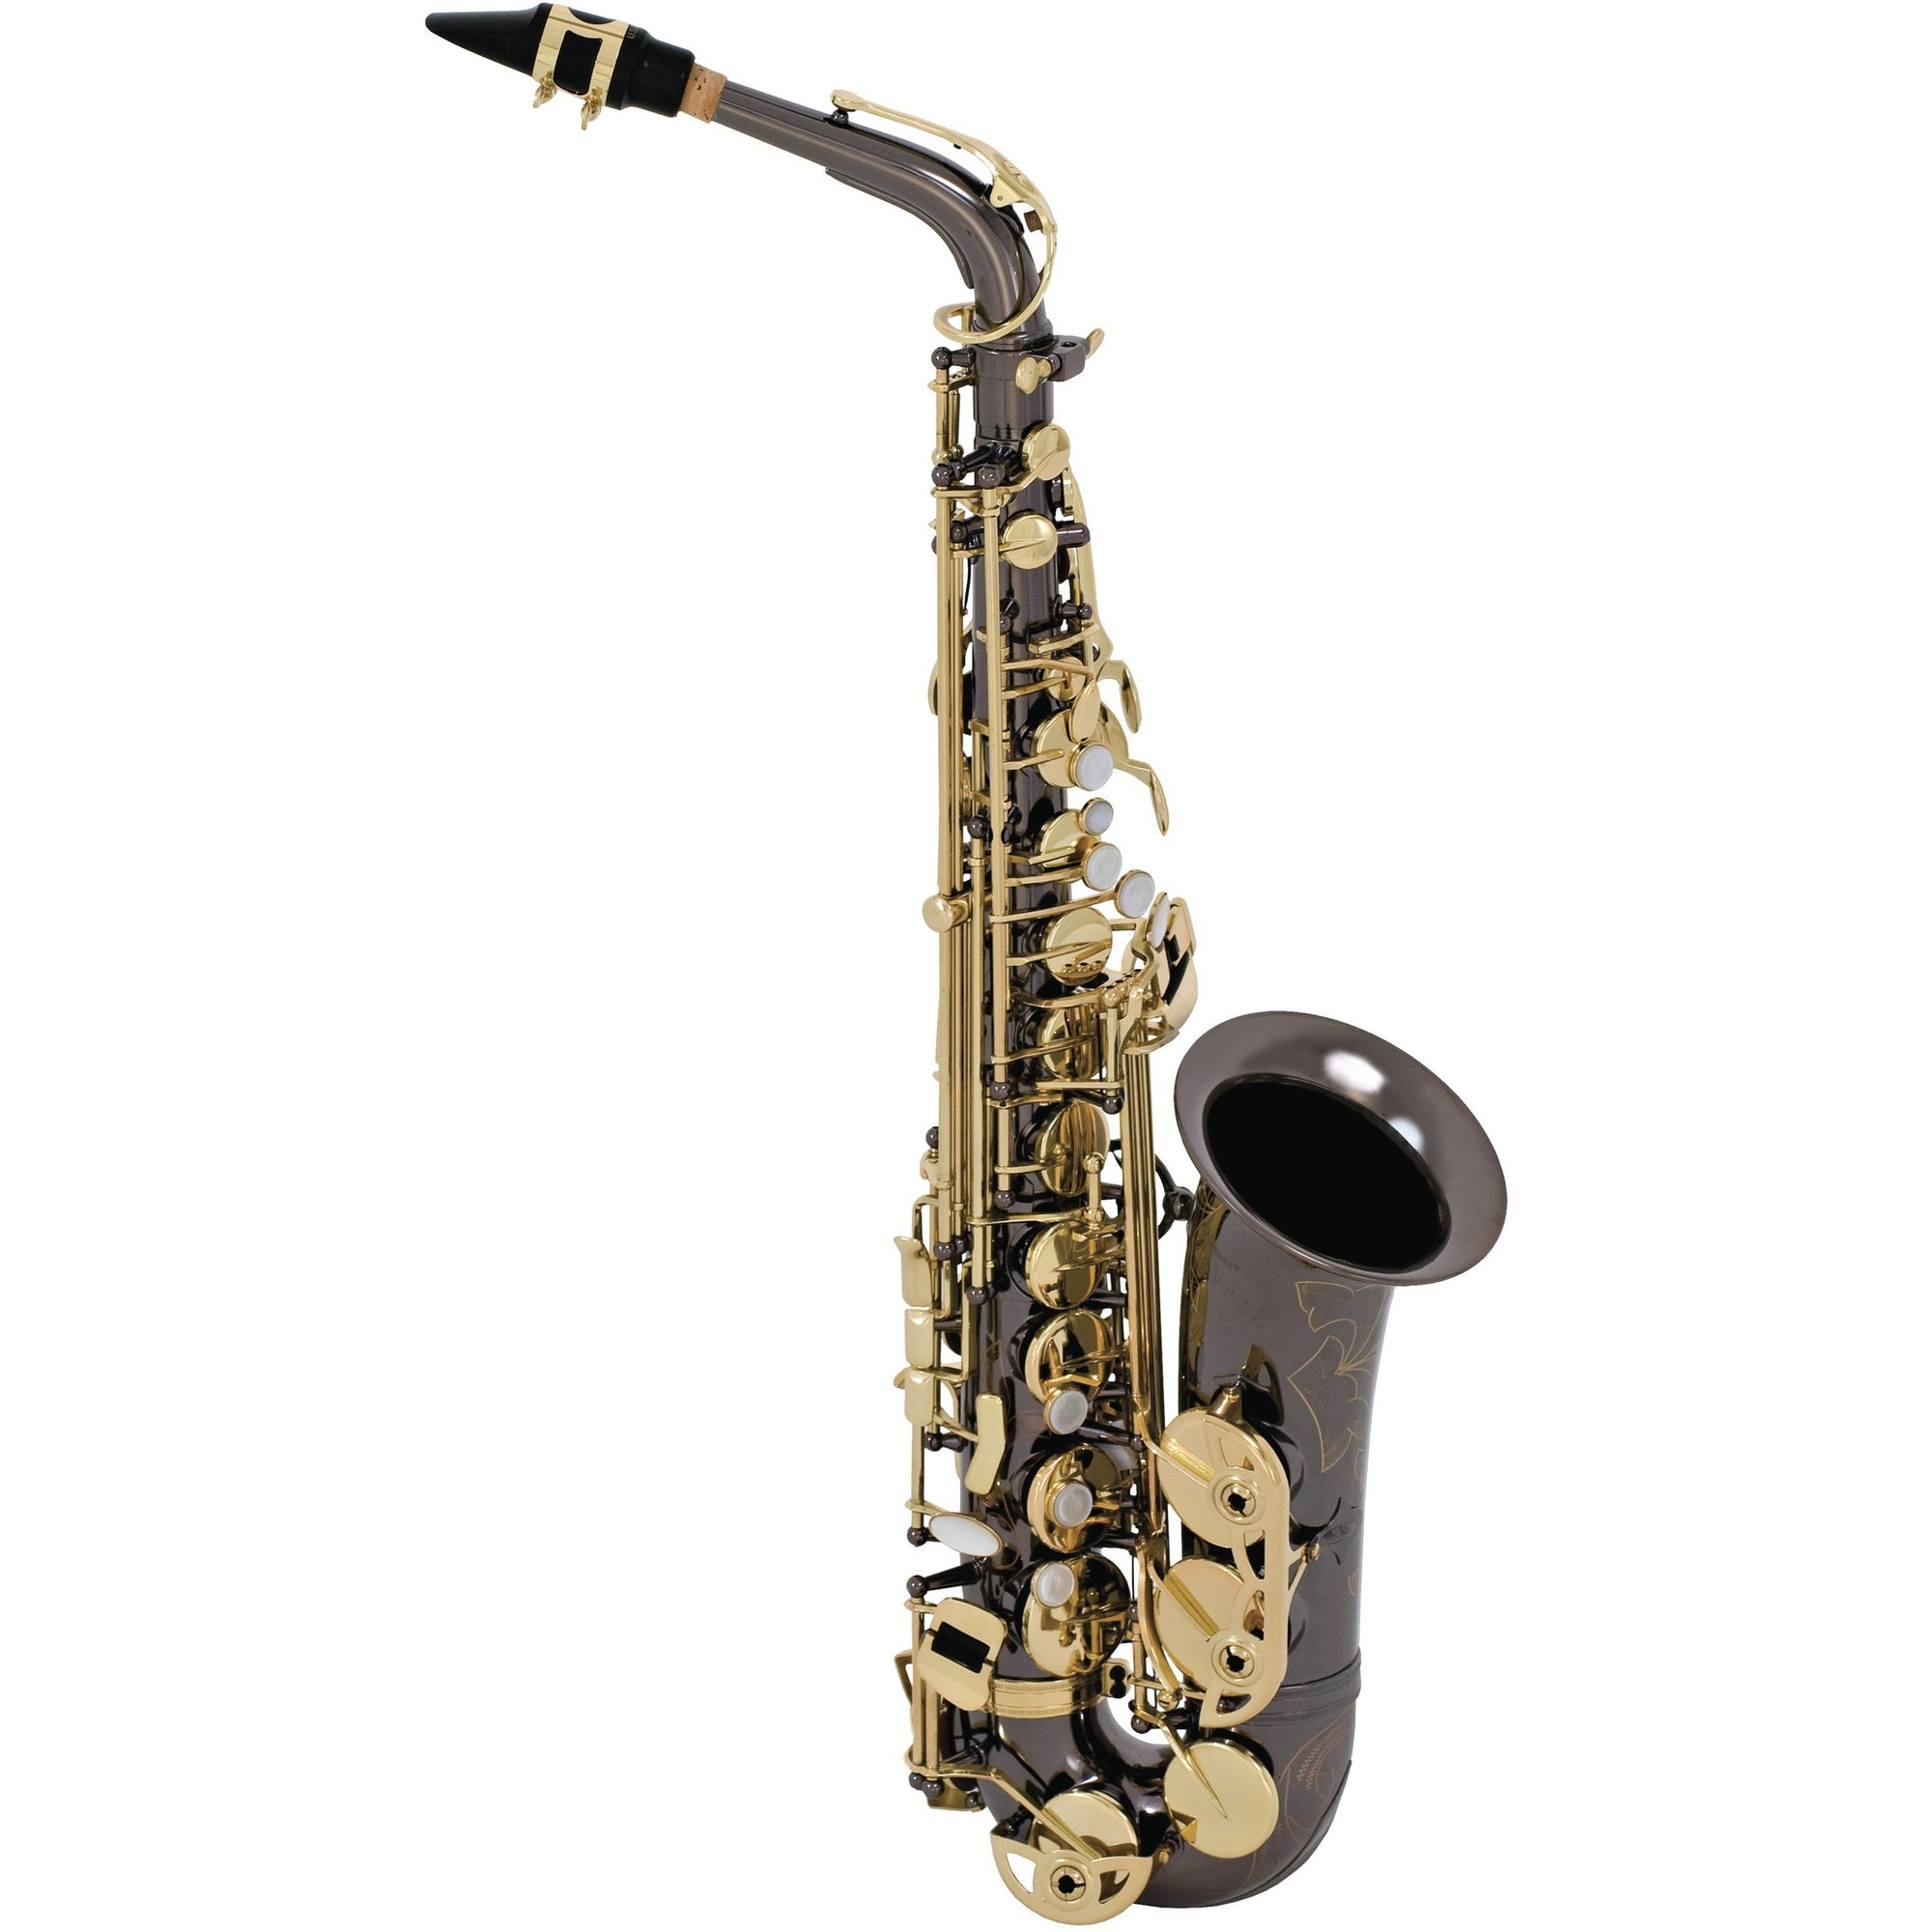 Selmer LaVoix II Alto Saxophone Outfit - Black Nickel | Kincaid's Is Music